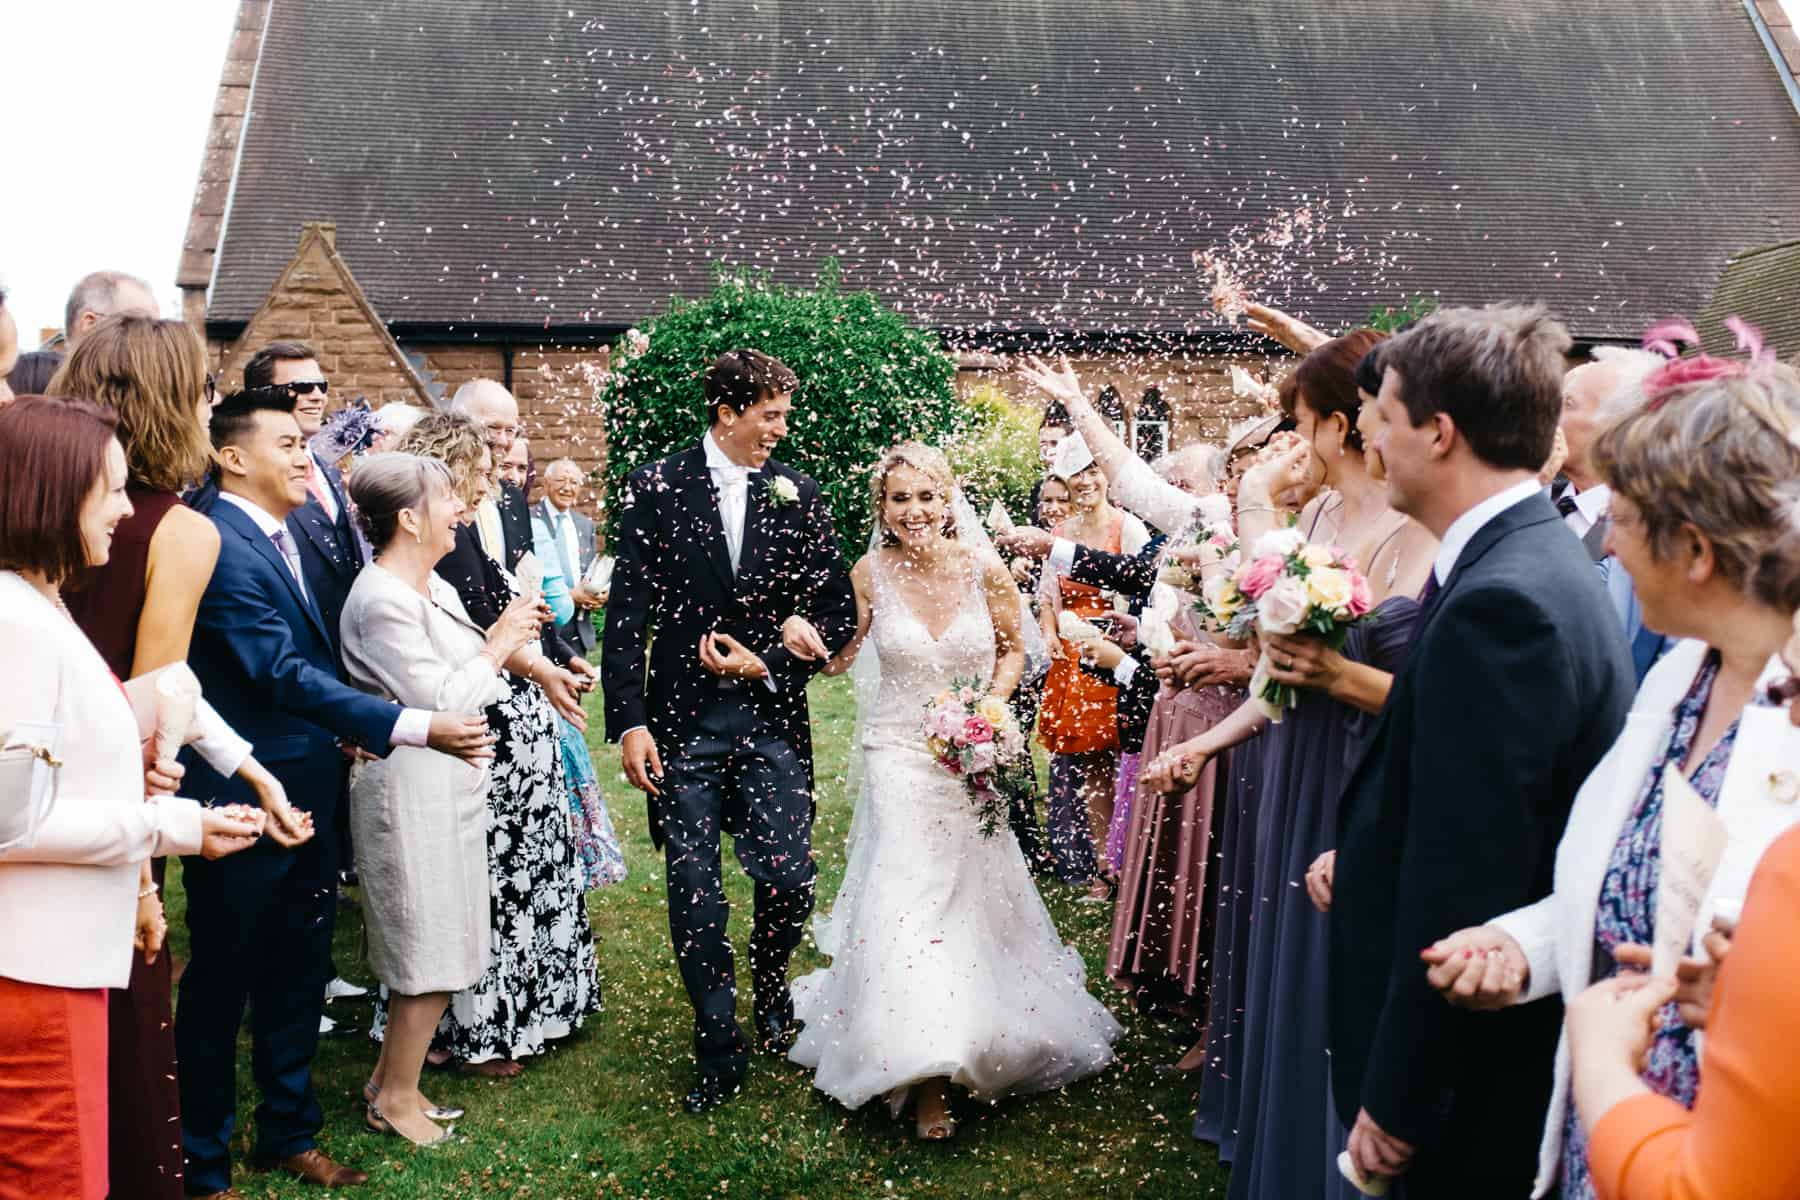 wedding photography confetti (1 of 1)